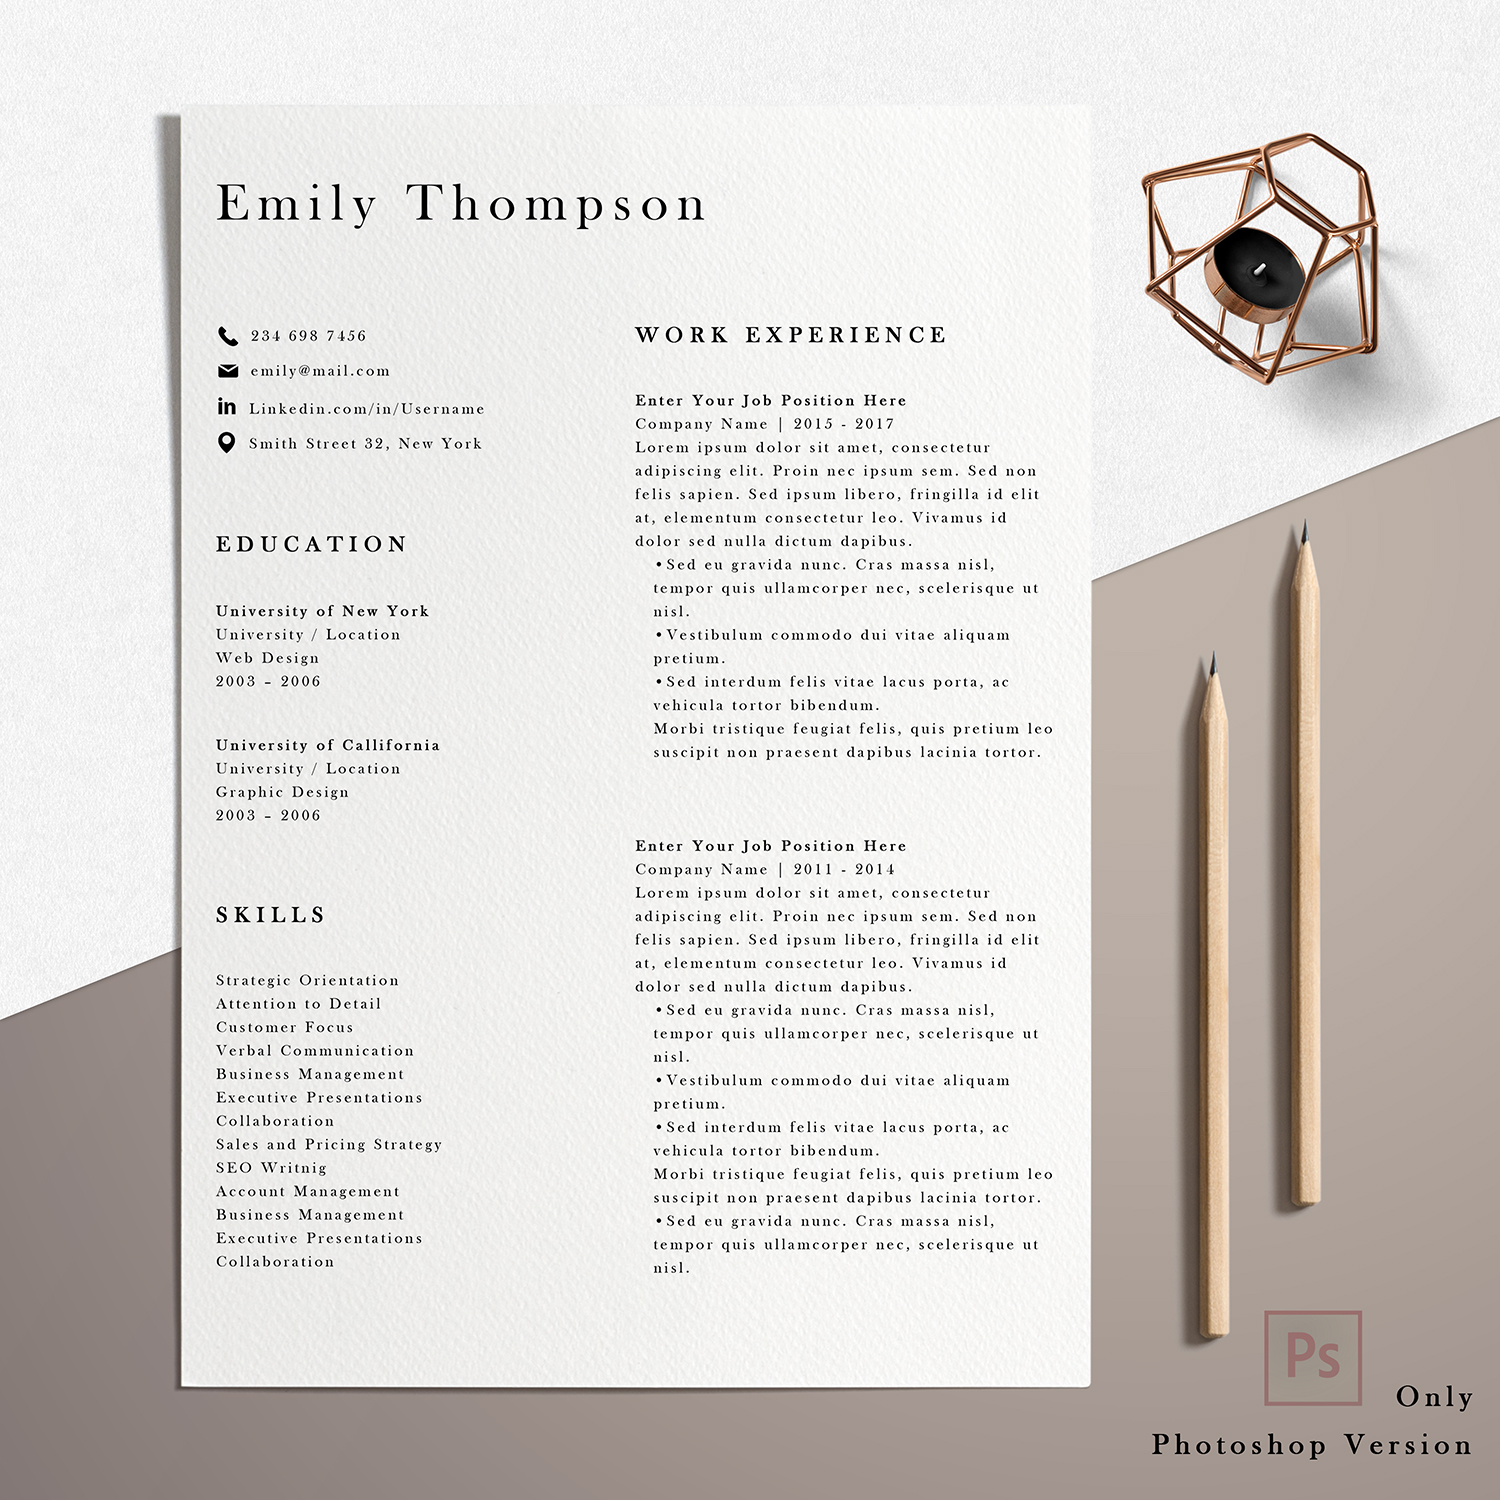 Resume Template | Photoshop CV Template - Emily example image 2